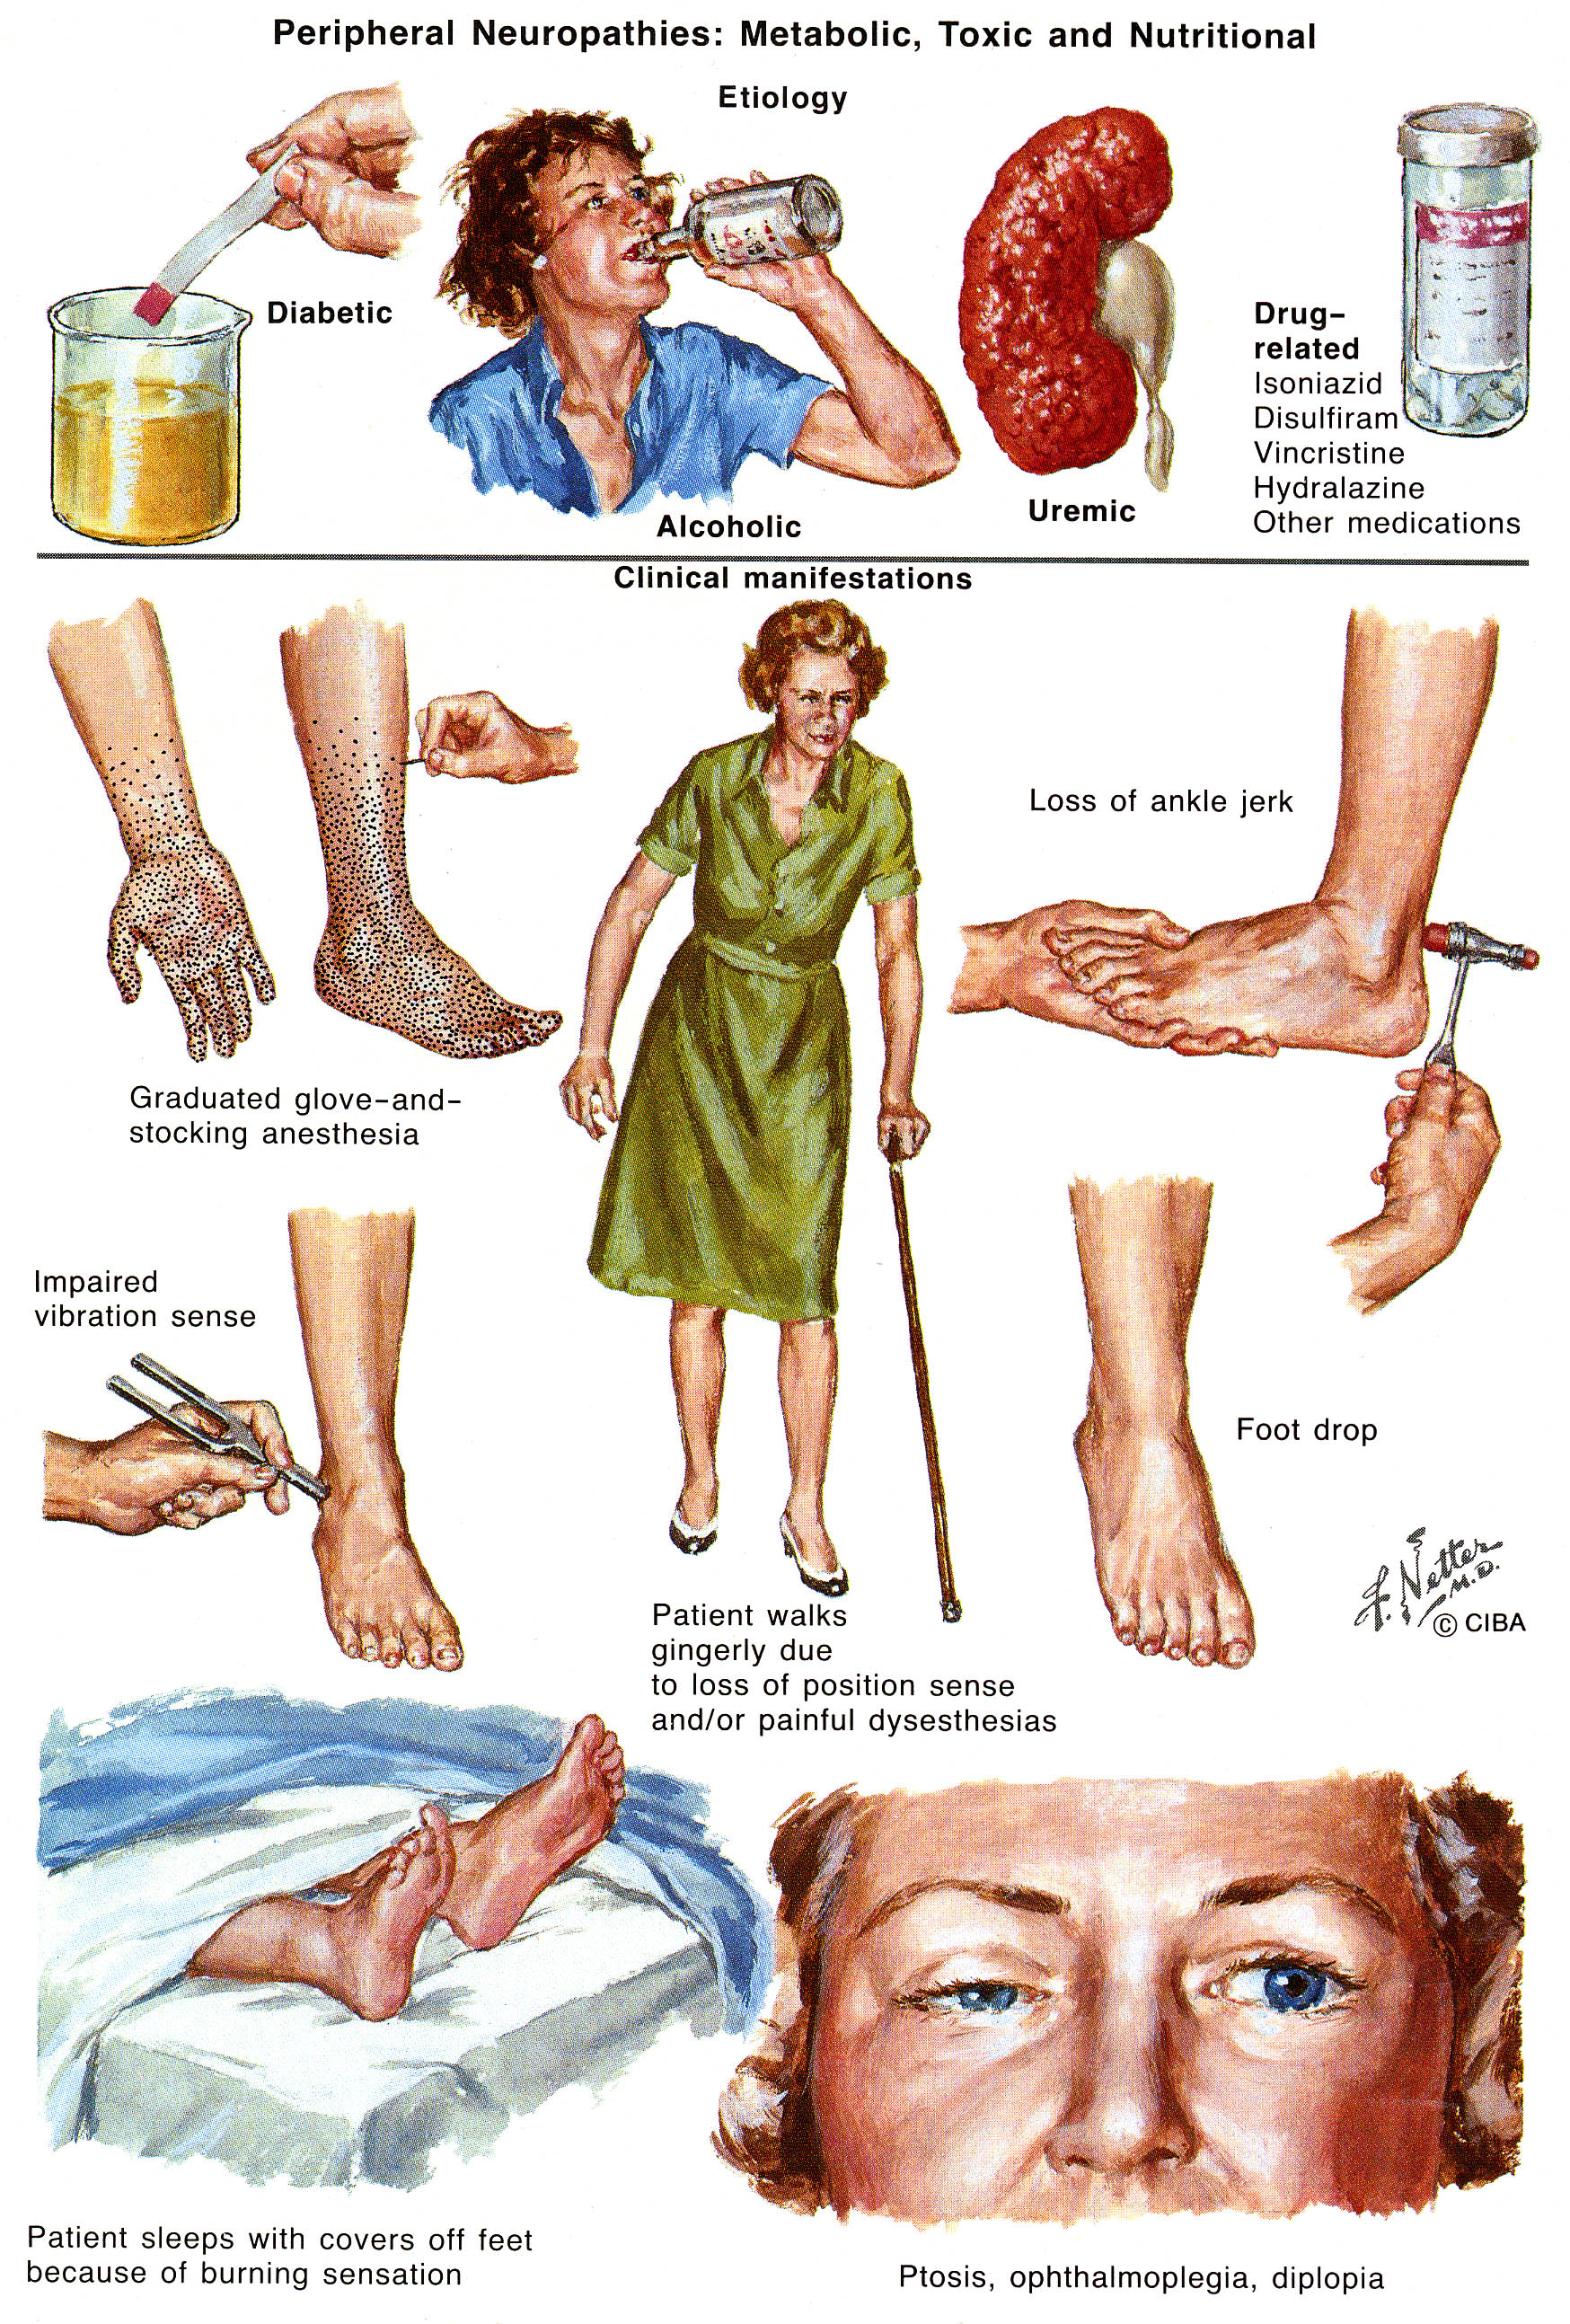 Peripheral Neuropathy. Causes, symptoms, treatment ...